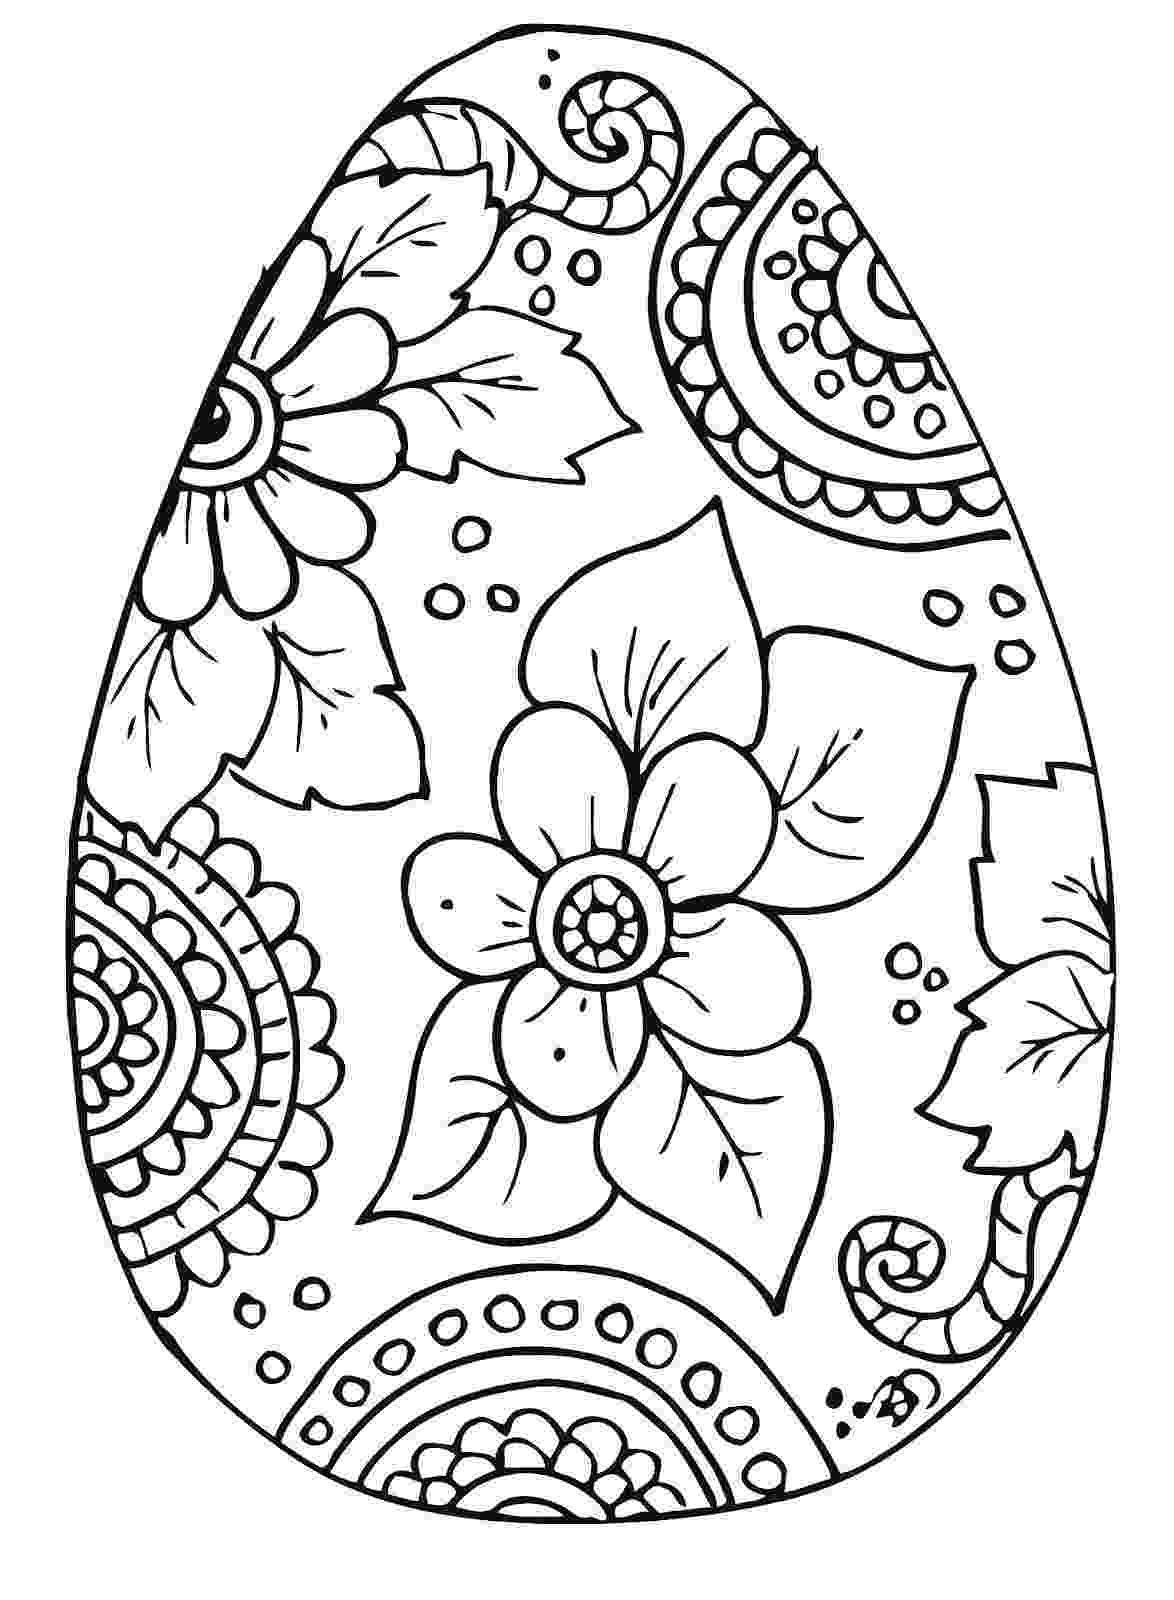 easter colouring pages printable for adults easter coloring easter egg coloring pages adults for printable pages easter colouring